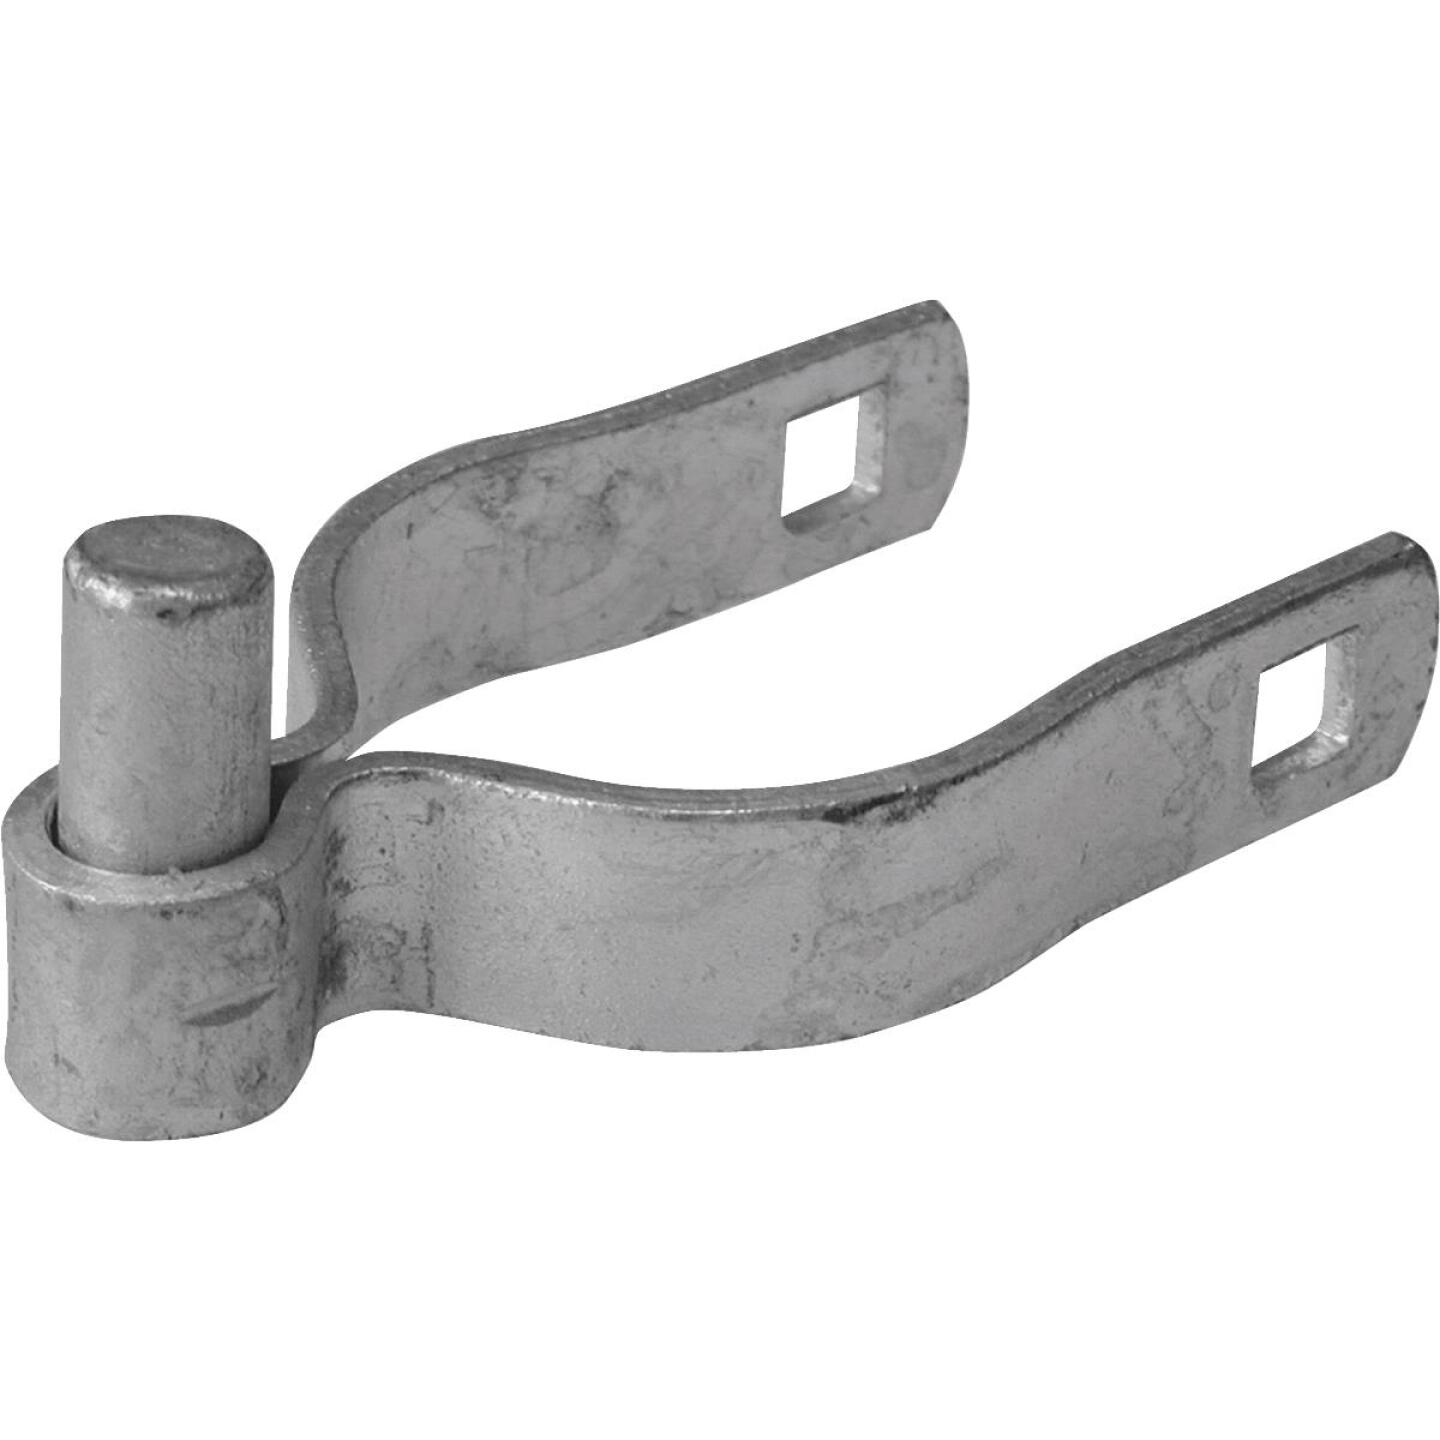 Midwest Air Tech 1-7/8 in. x 3/8 in. Steel Chain Link Gate Hinge Clamp Image 1